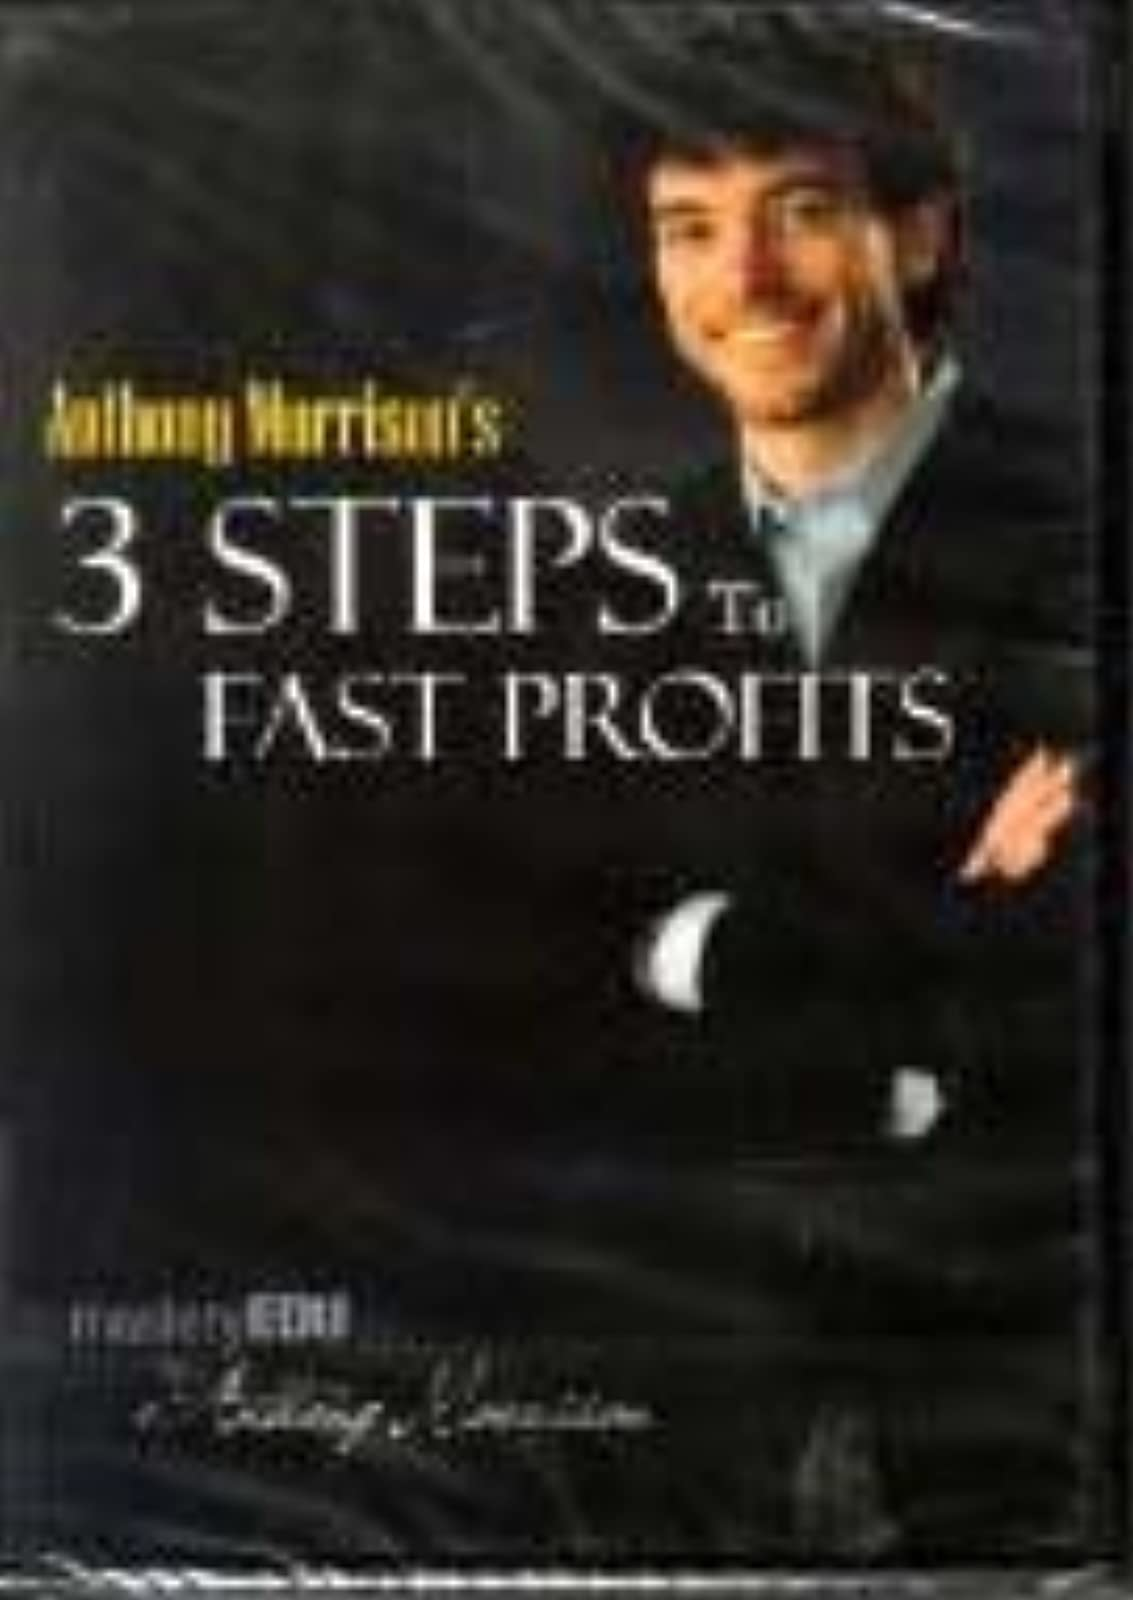 3 Steps To Fast Profits Mastery Edu By Anthony Morrison On DVD